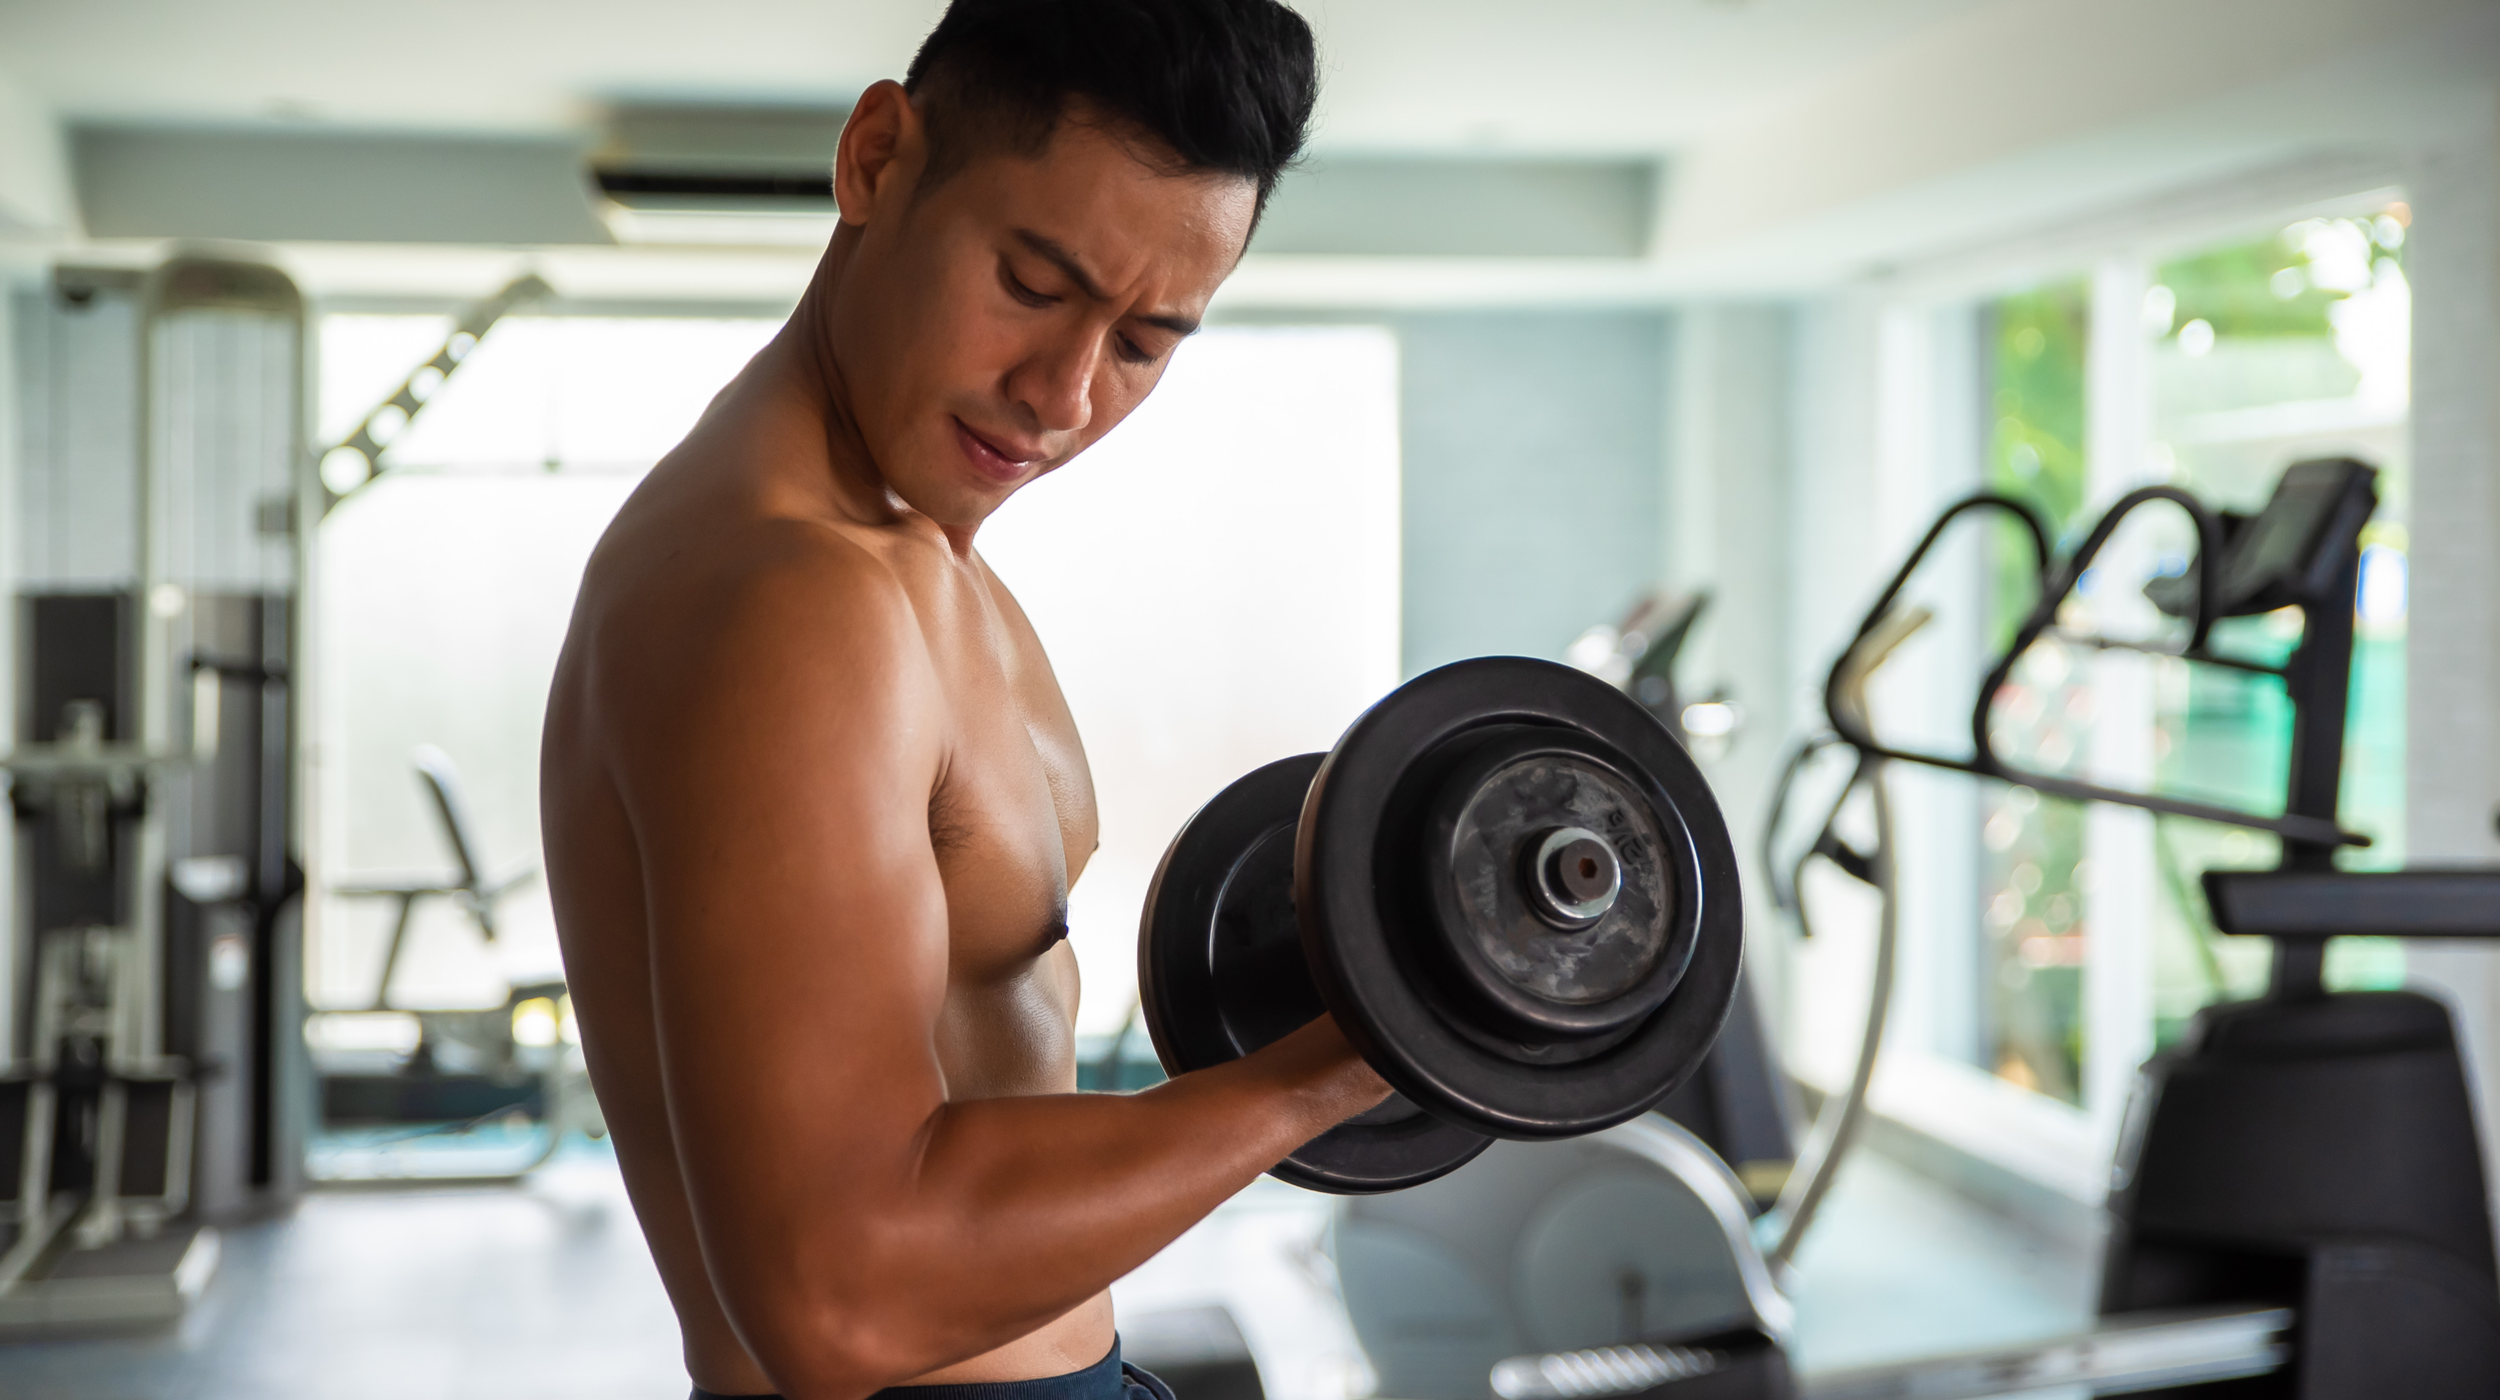 How to Safely Start Weight Training if You are a Beginner